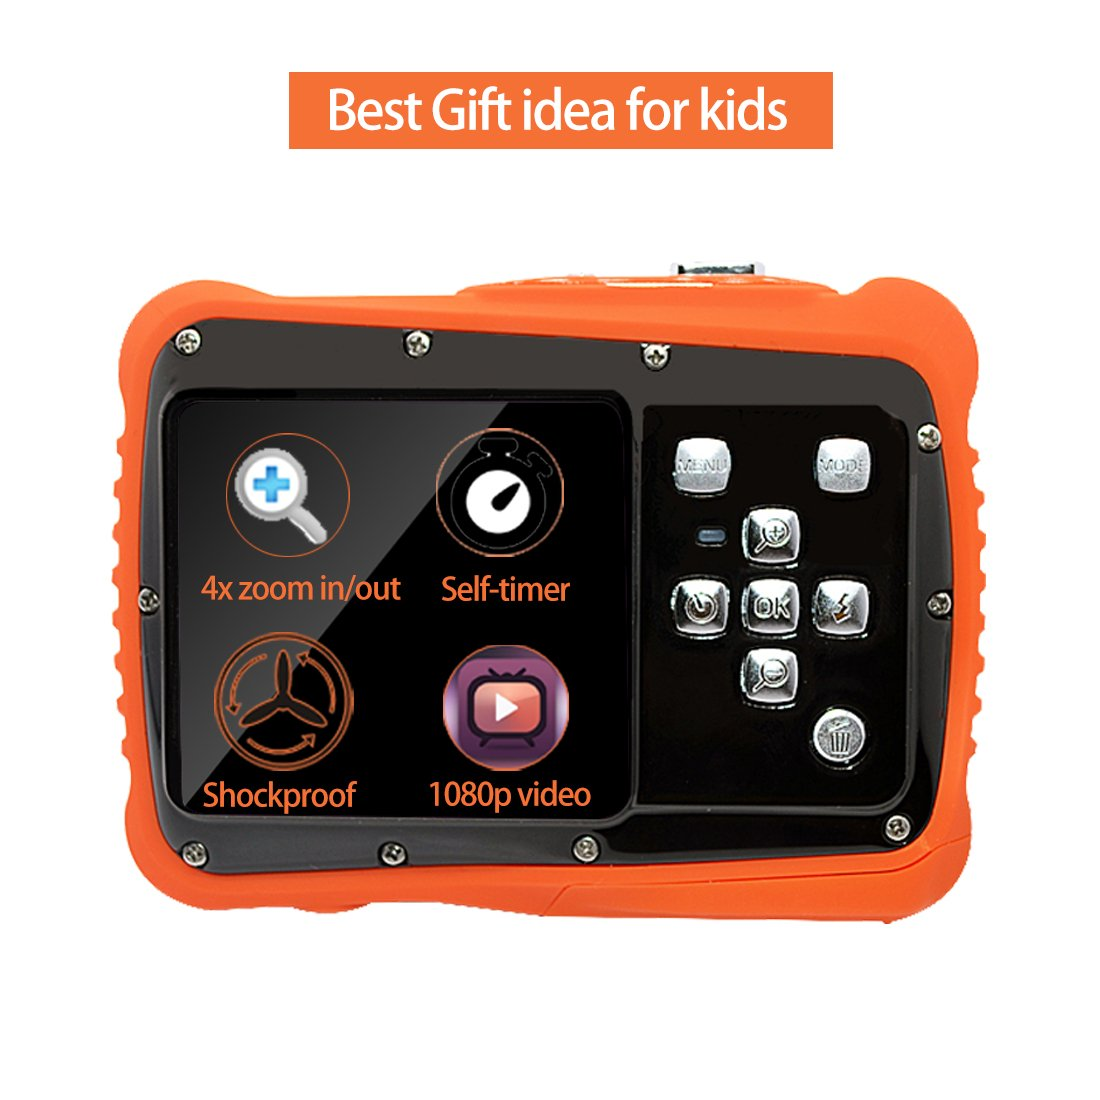 Underwater Action Digital Camera Camcorder for Kids, waterproof 3M/9.8ft, 5 MP CMOS 12MP 1080p, Orange by Oikkei (Image #2)